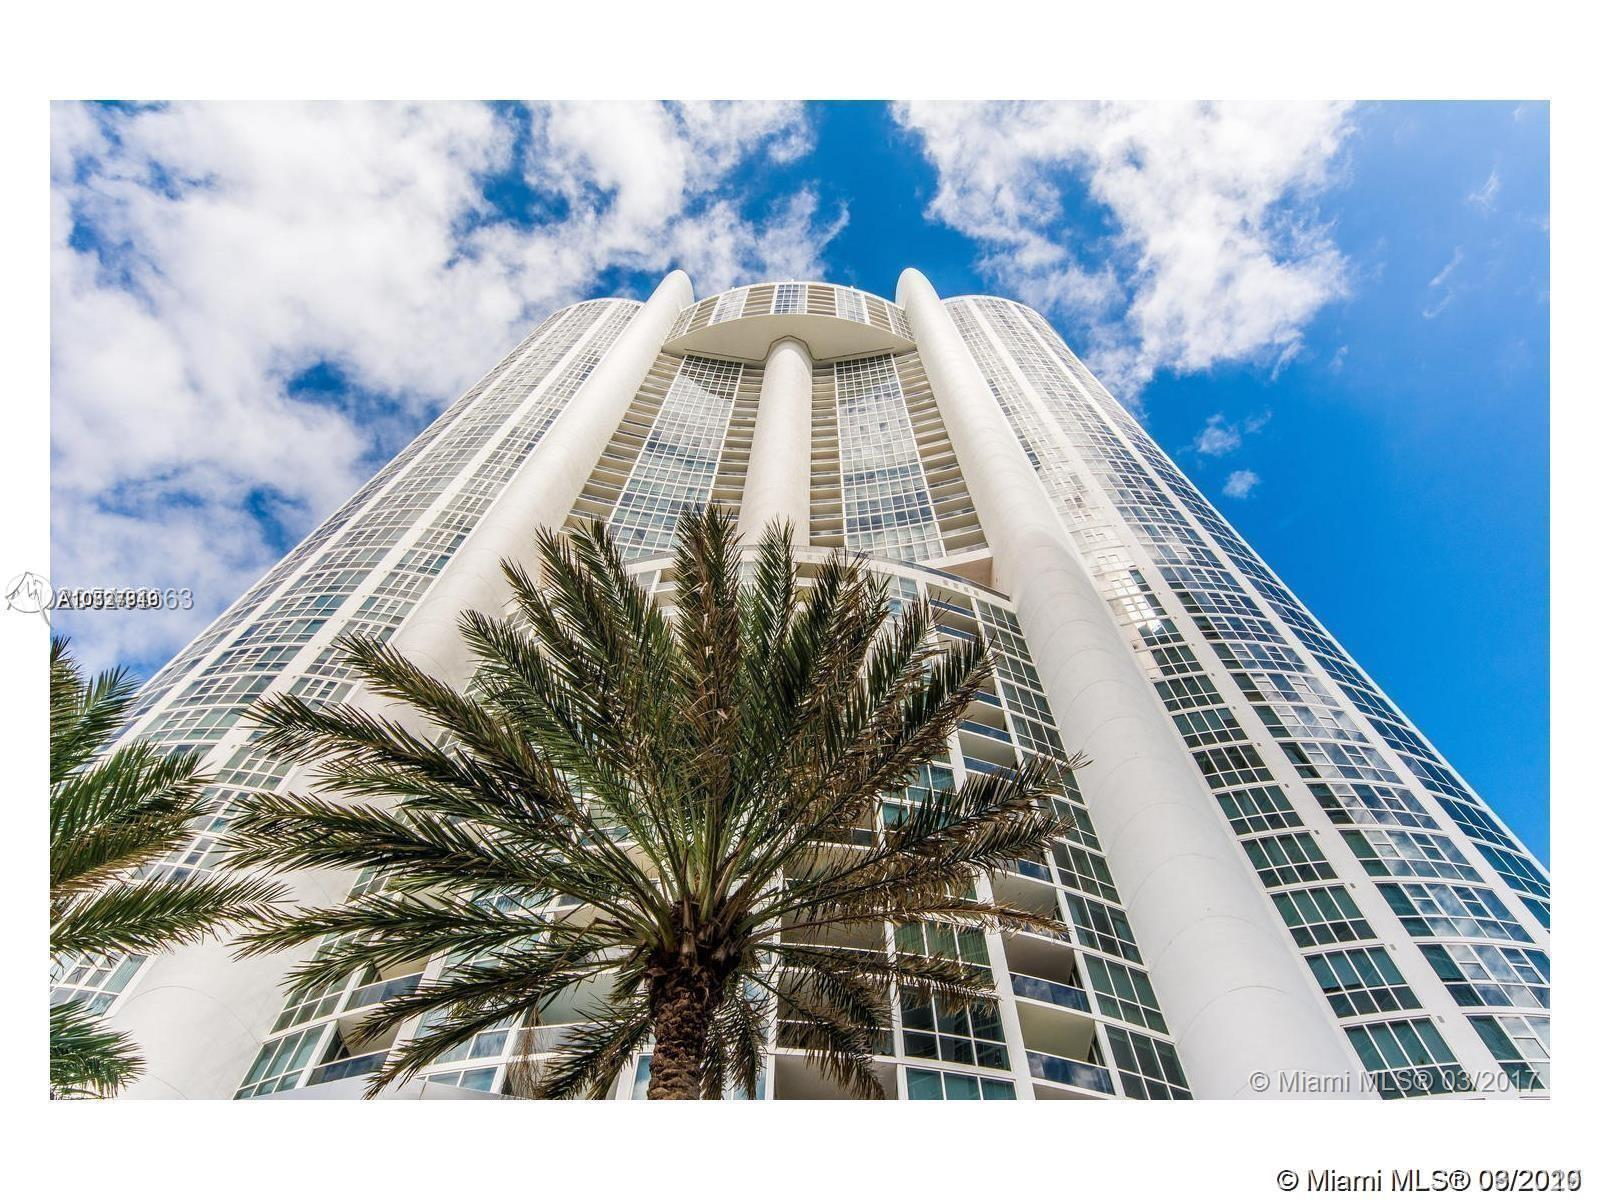 18201 Collins Ave # 1708, Sunny Isles Beach, Florida 33160, 1 Bedroom Bedrooms, ,2 BathroomsBathrooms,Residential,For Sale,18201 Collins Ave # 1708,A10827819